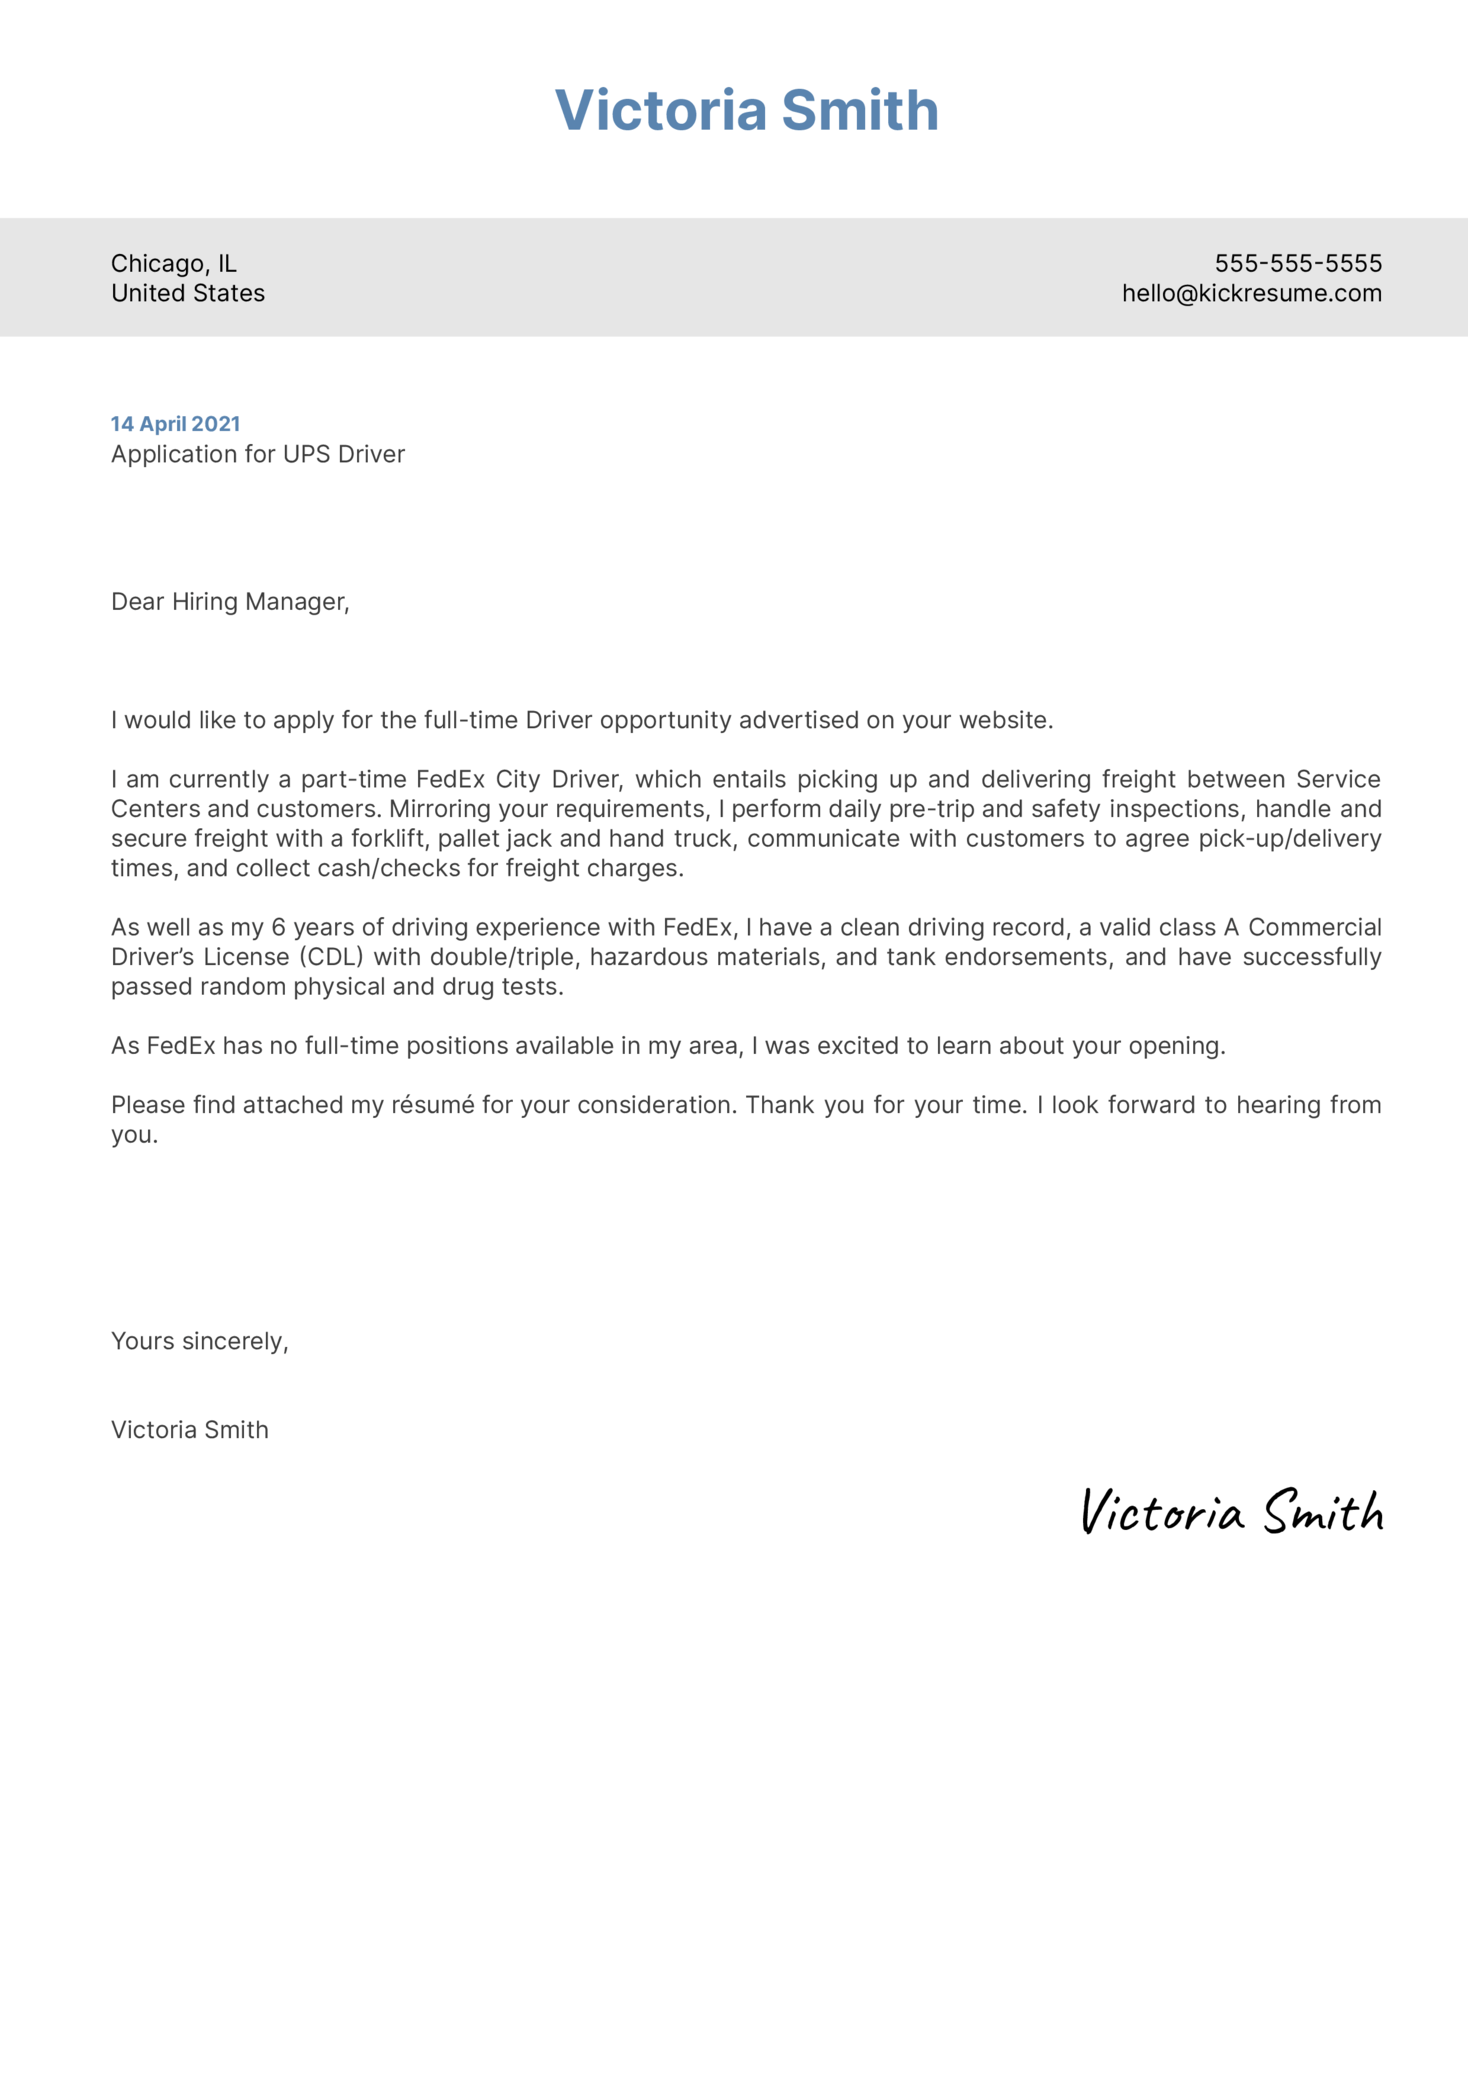 UPS Driver Cover Letter Example